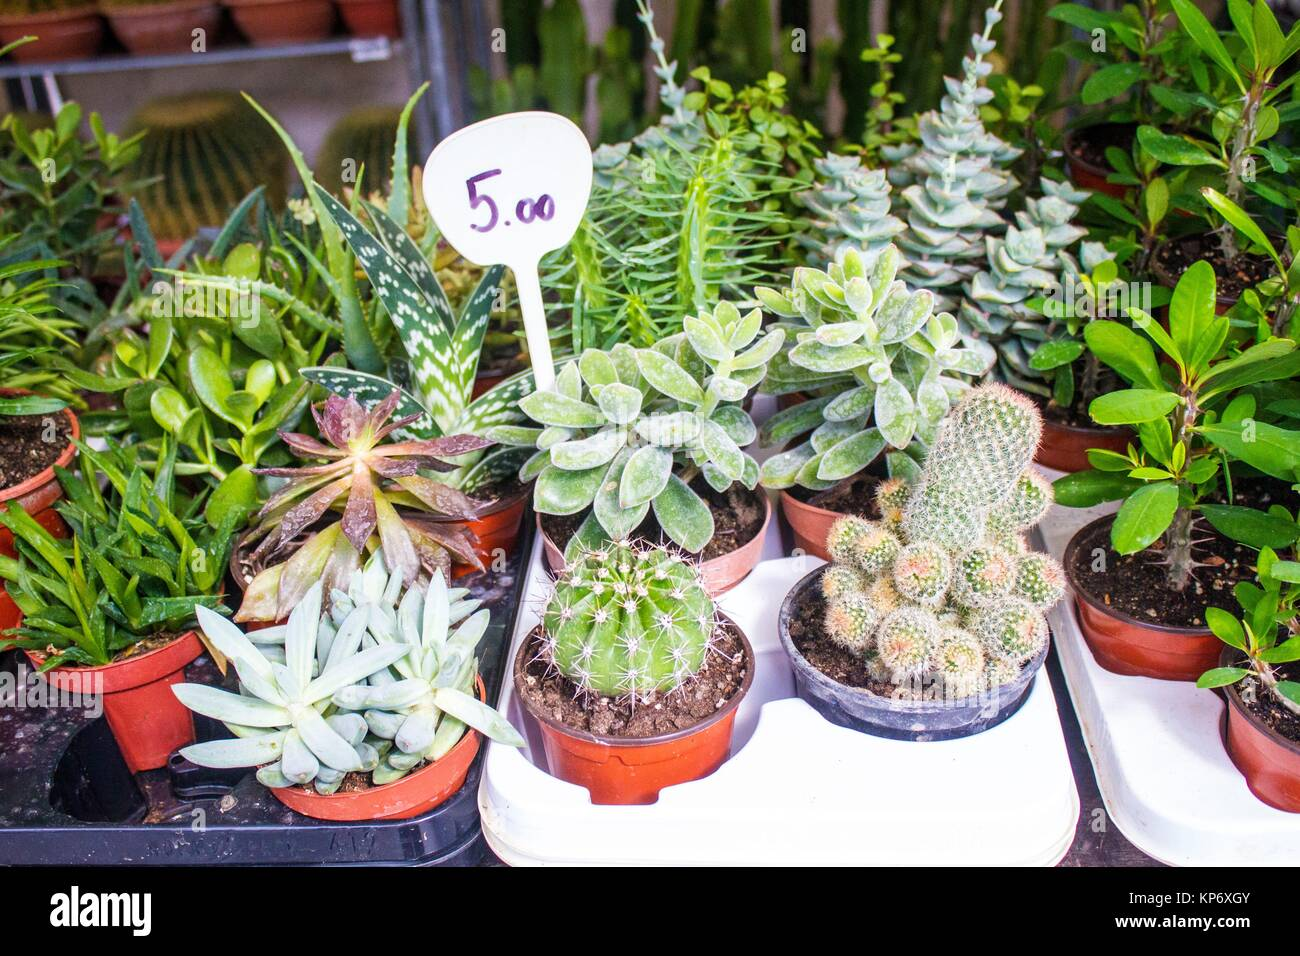 Outdoor Plants For Sale.Different Kinds Of Plants For Sale In An Outdoor Market In